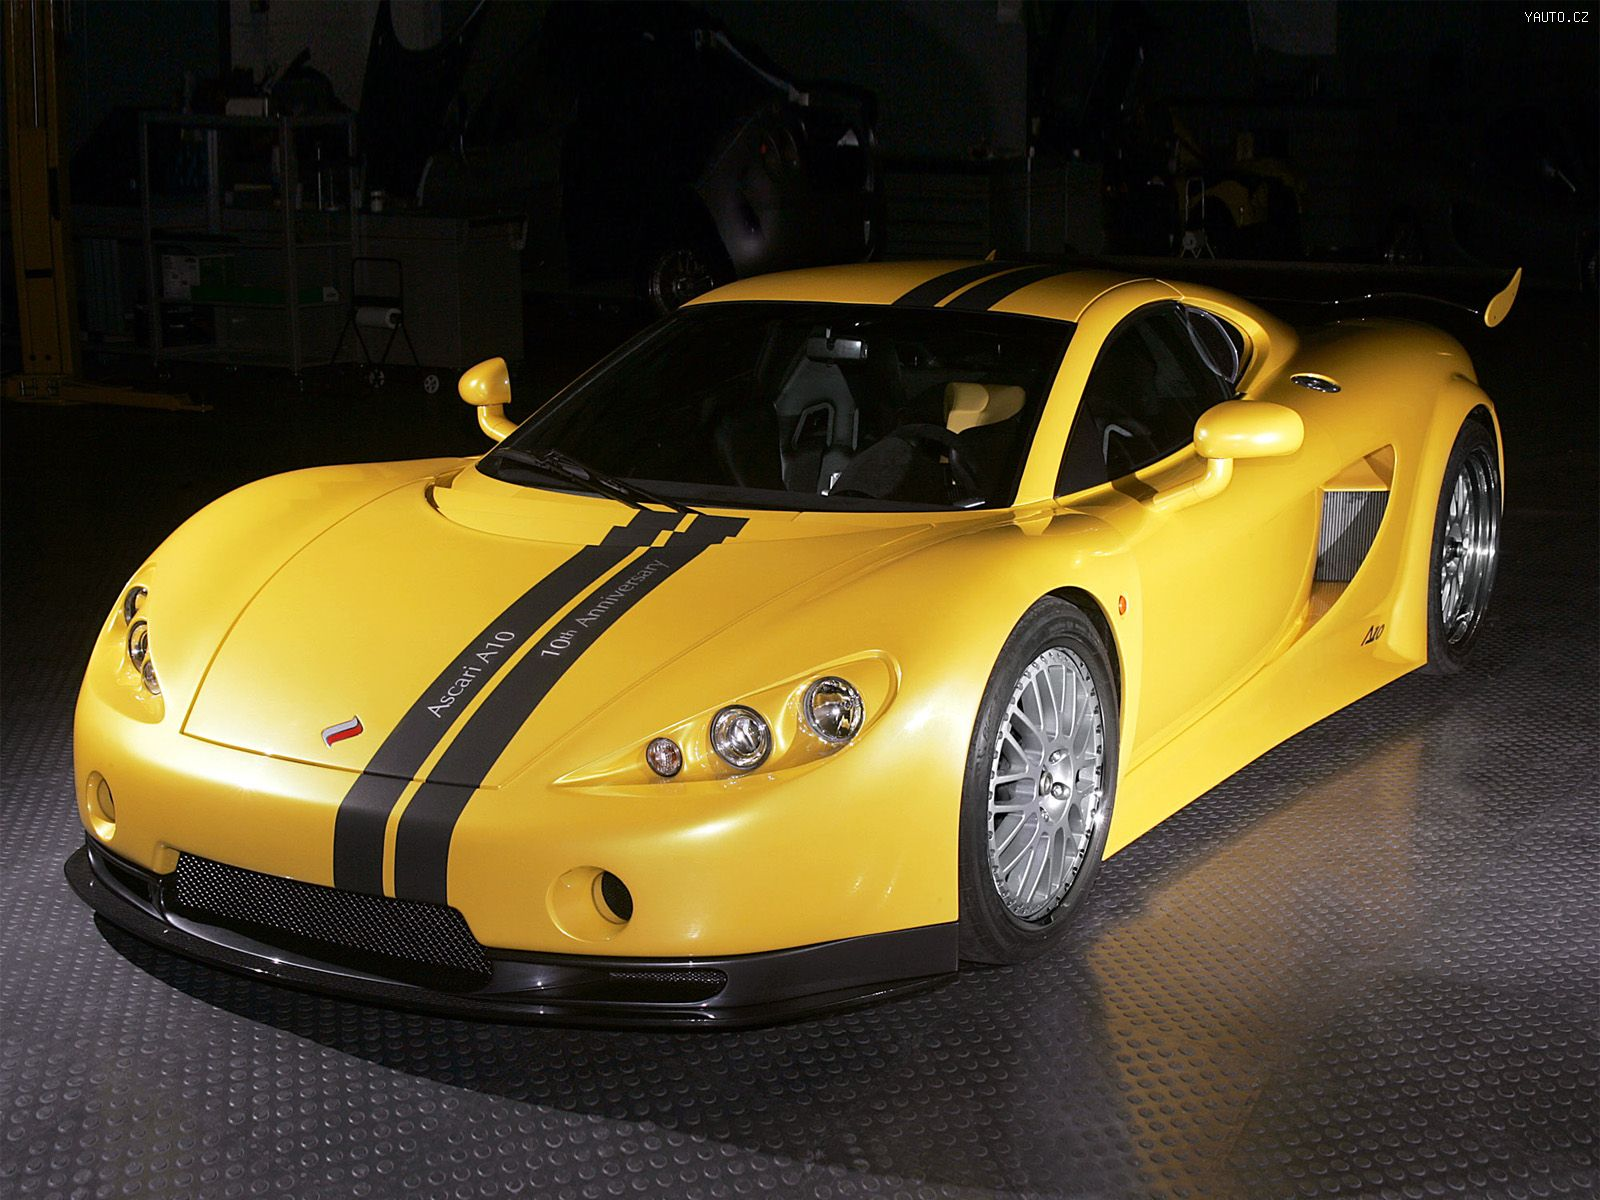 Ascari Hd Wallpaper-2013